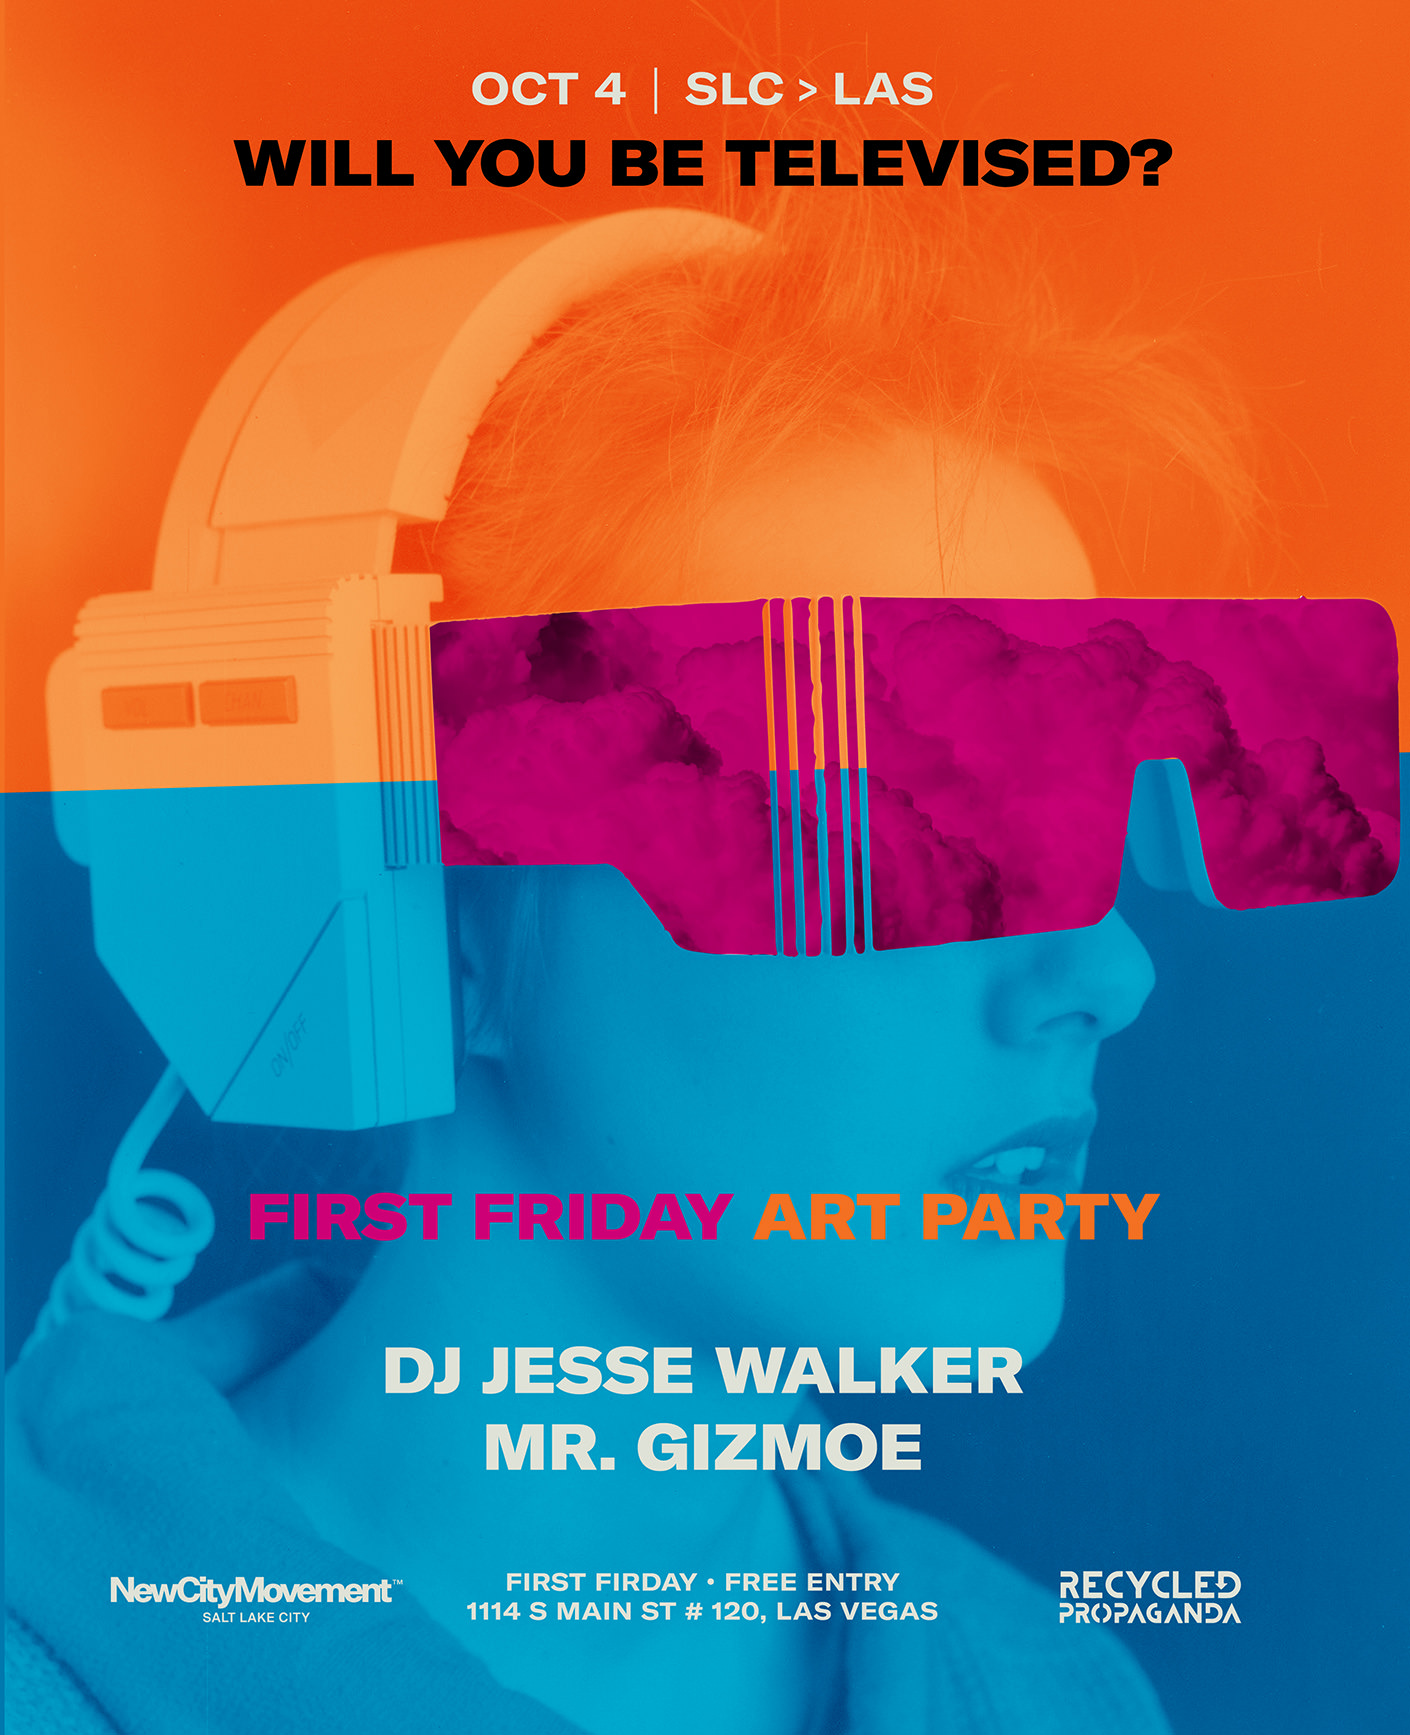 WILL YOU BE TELEVISED?-10.04.19-RECYCLED-PROPAGANDA-LVx.jpg